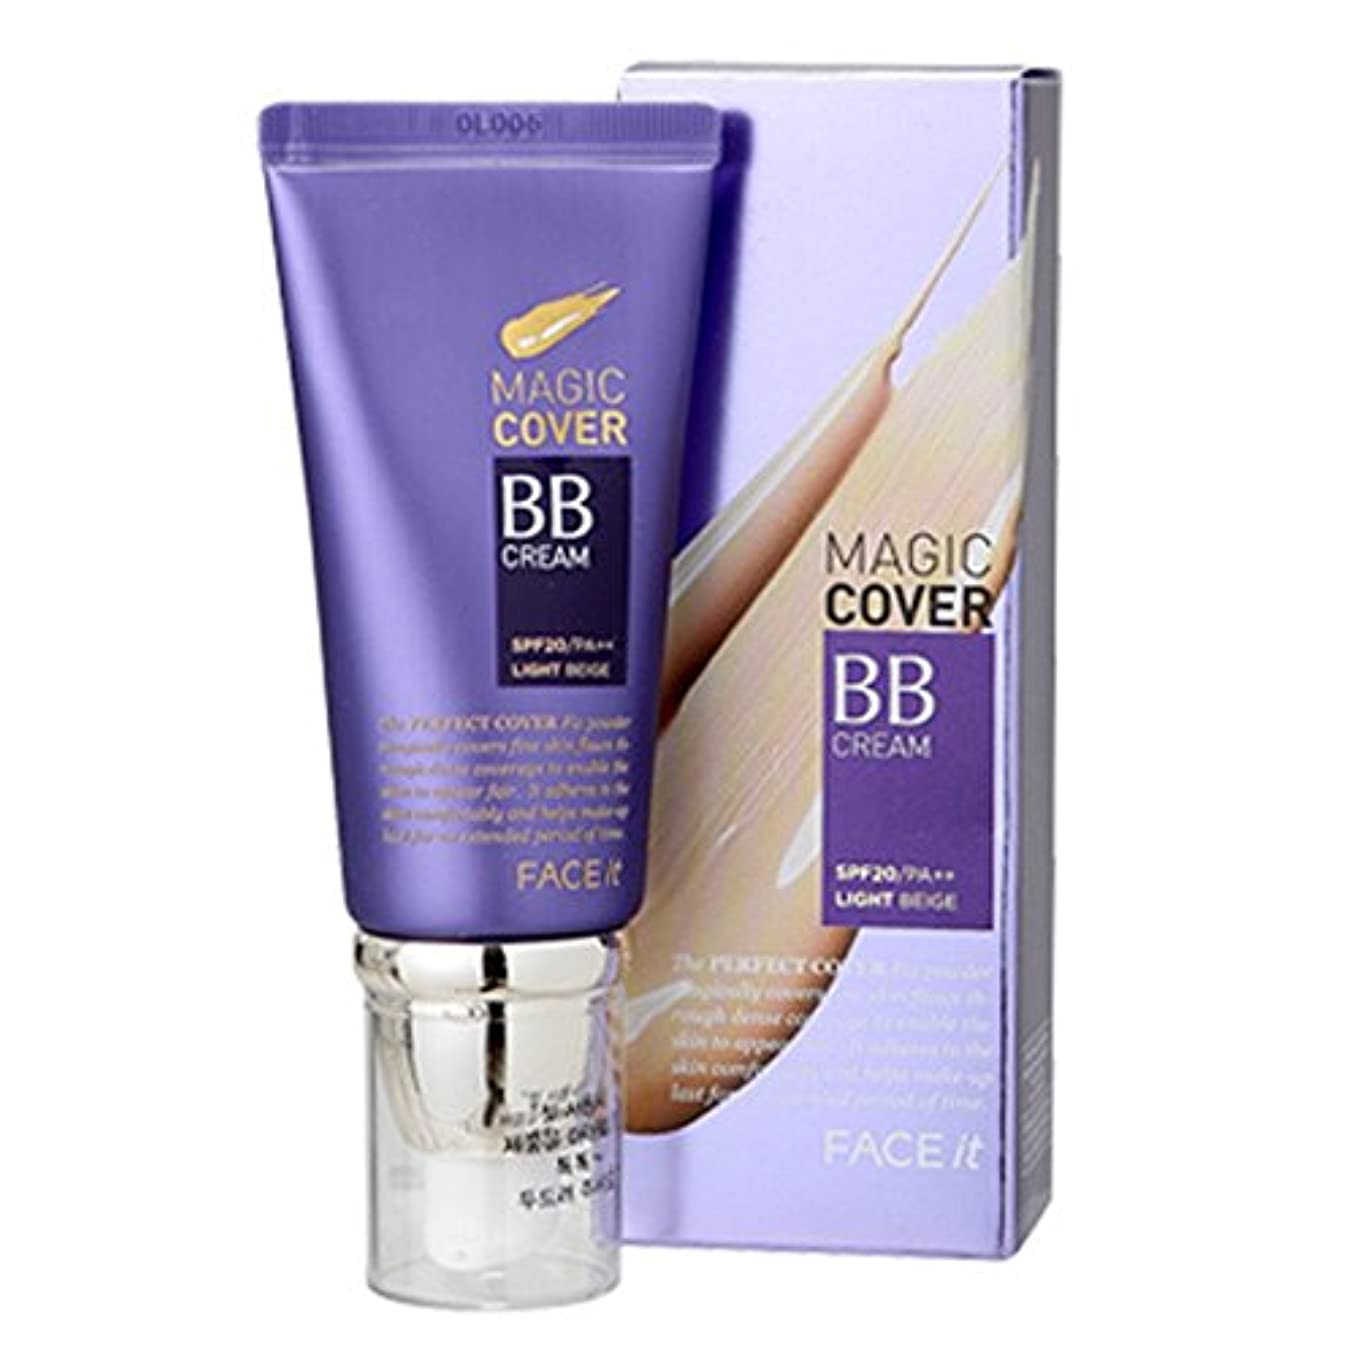 帰るキャメルアノイザフェイスショップ The Face Shop Face It Magic Cover BB Cream 45ml (01 Light Beige)